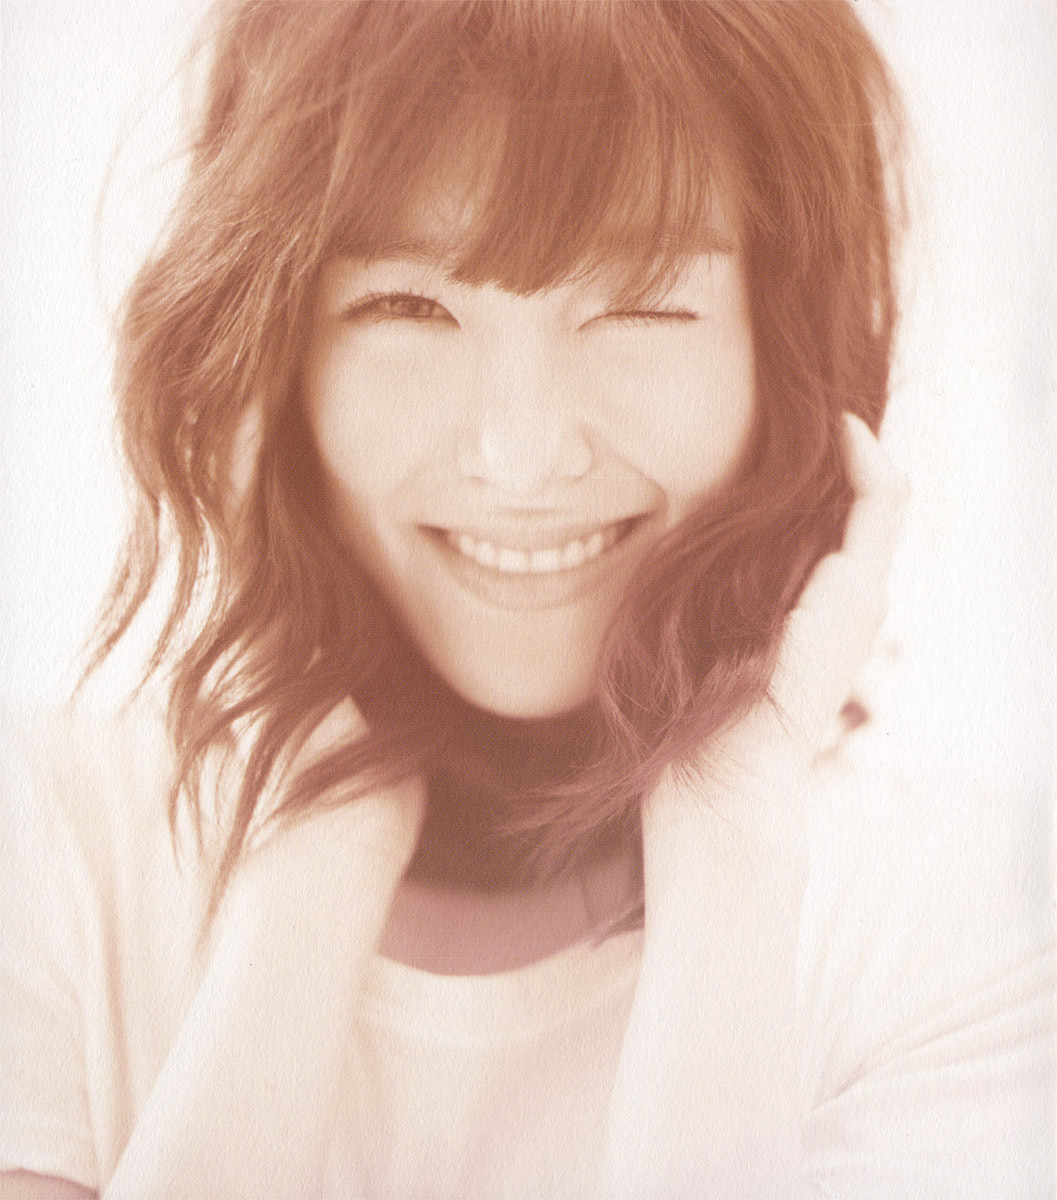 Tiffany Gee Ver. 3 - girls-generation-snsd photo